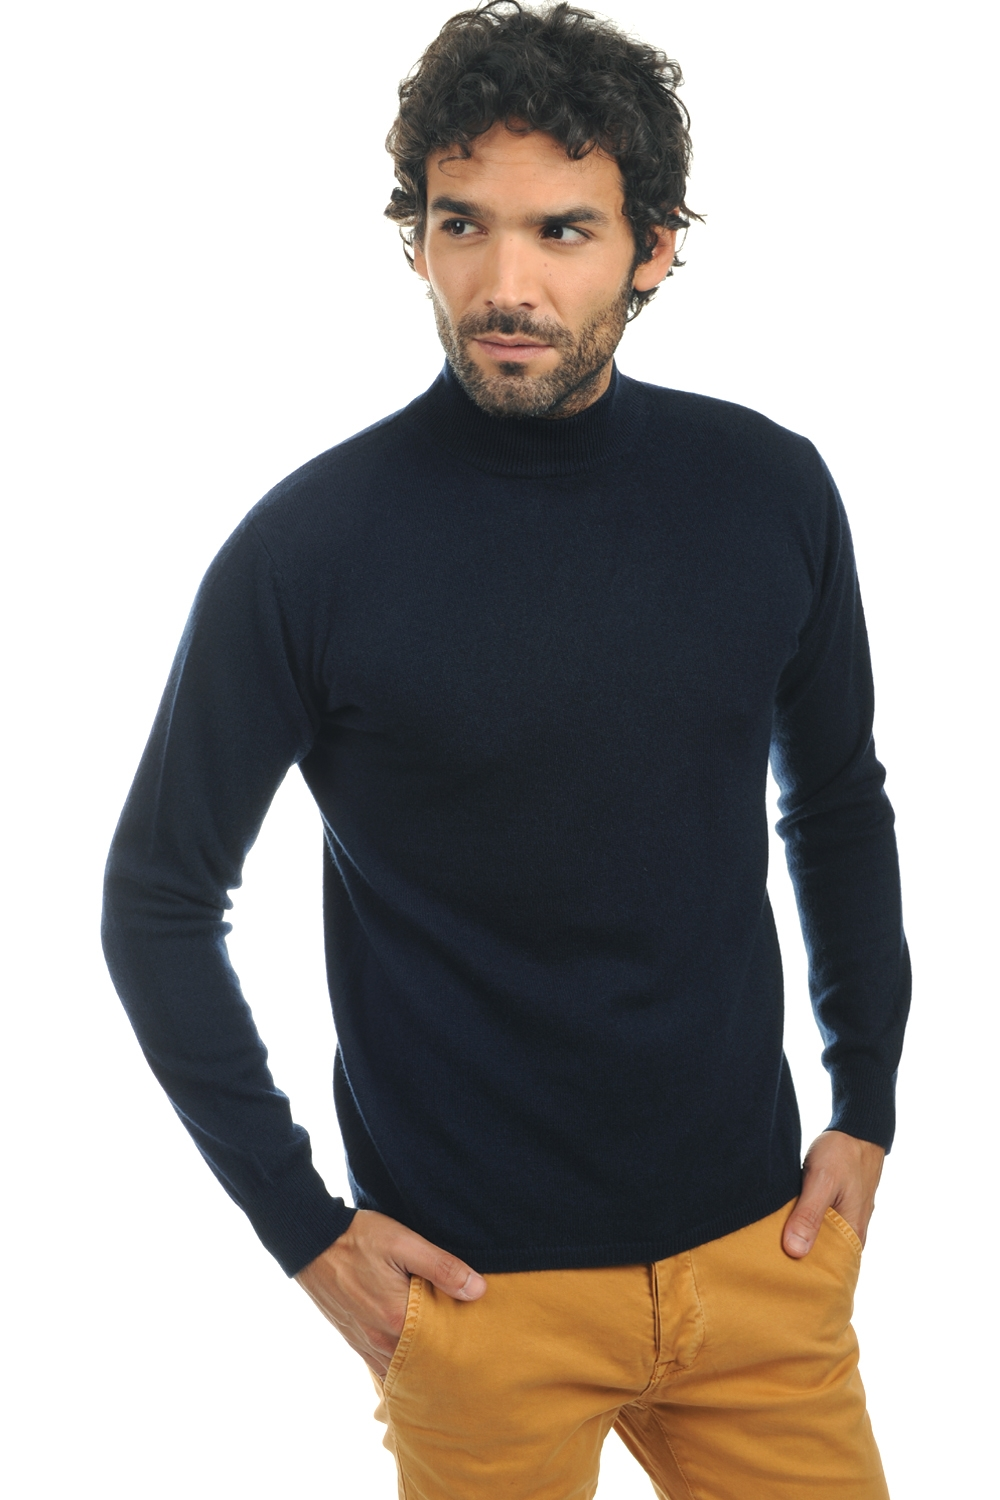 cachemire pull homme col roule frederic marine fonce xl